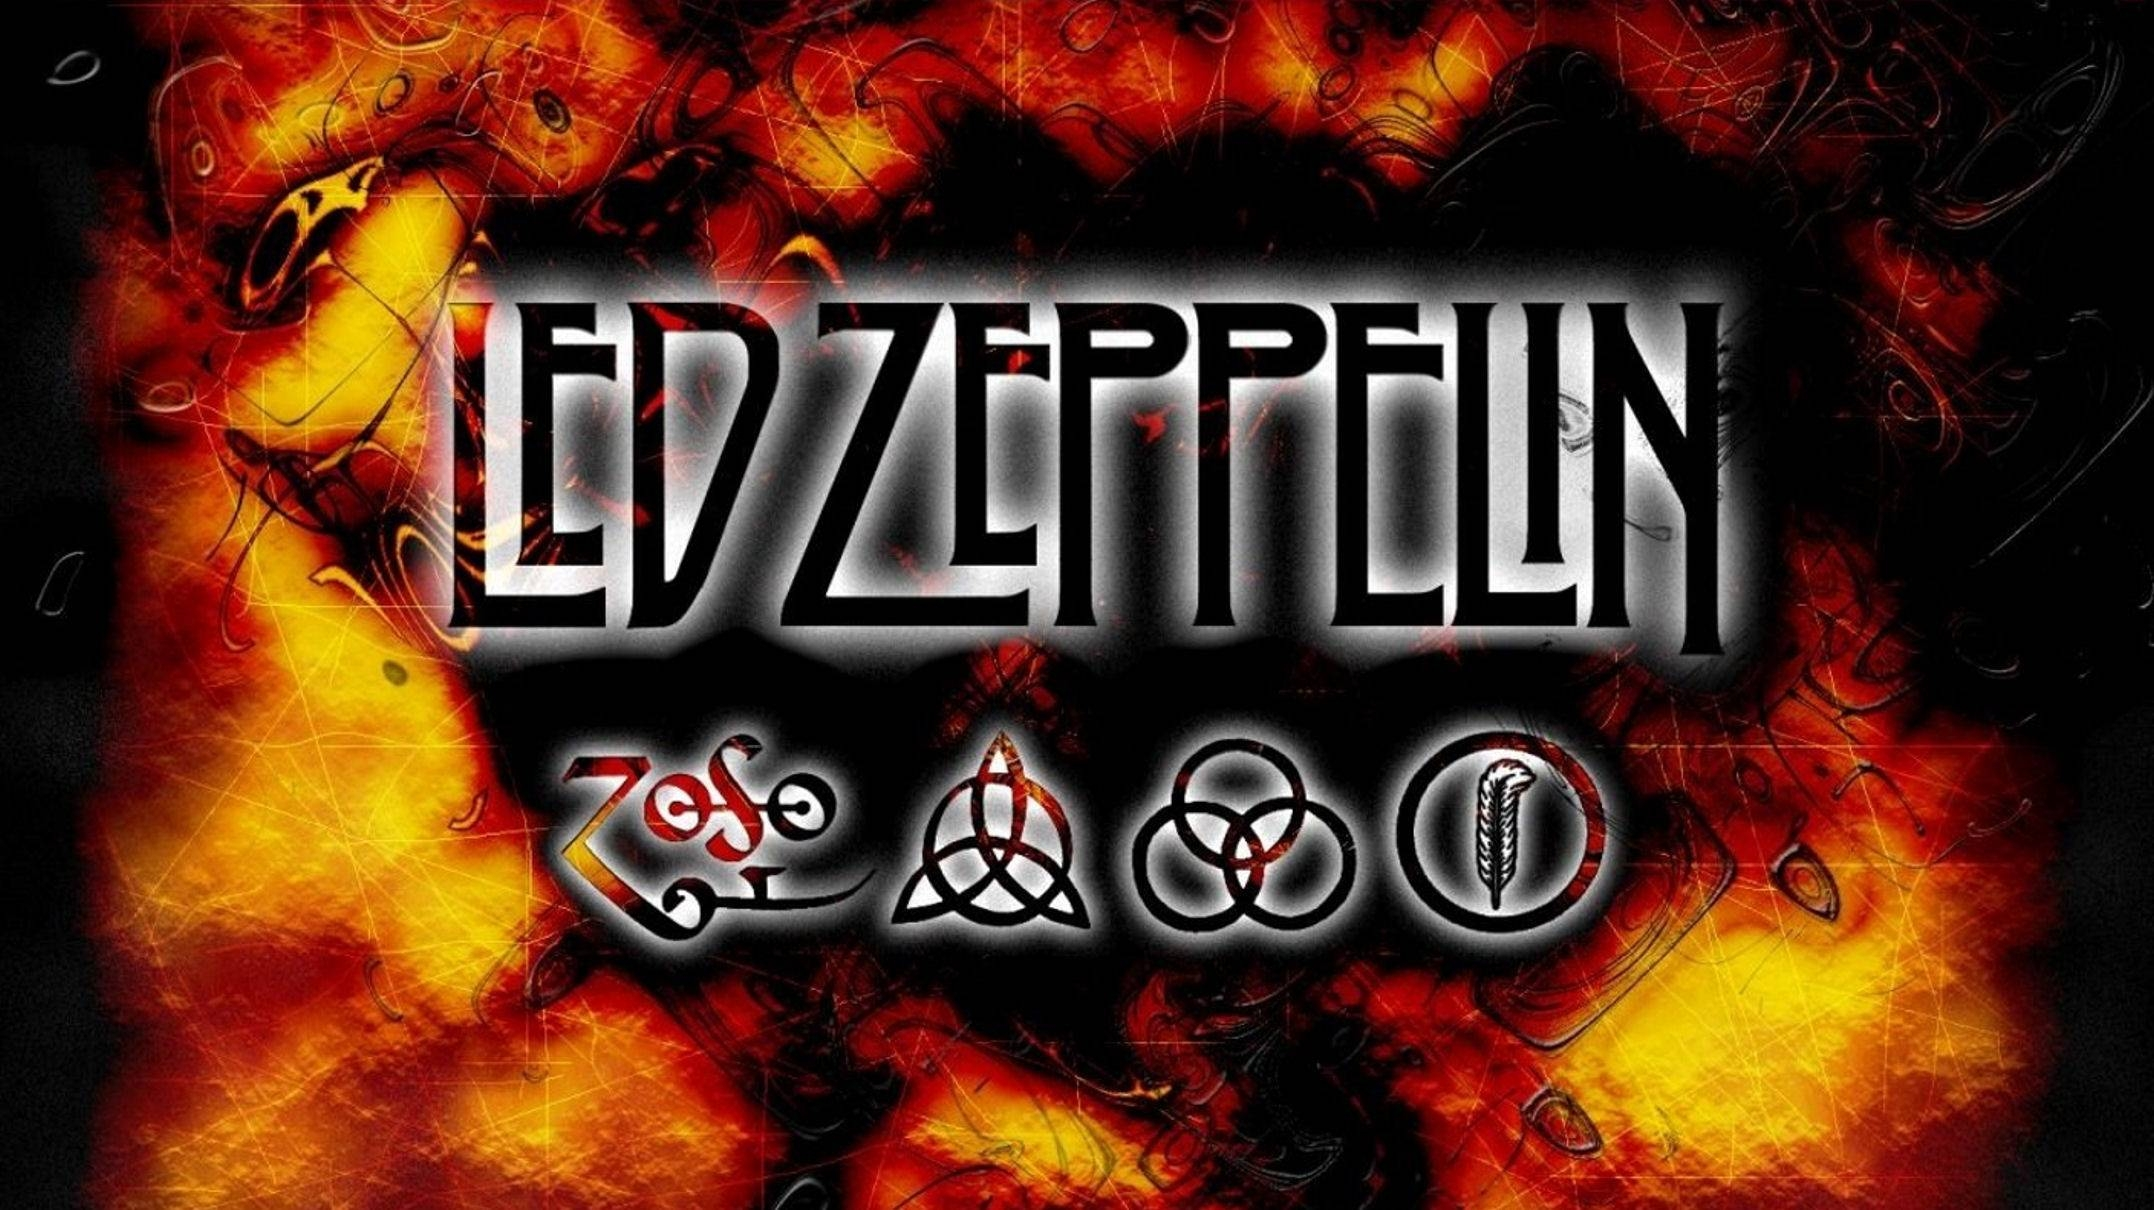 48 Led Zeppelin Hd Wallpapers | Backgrounds – Wallpaper Abyss Intended For Best And Newest Led Zeppelin 3D Wall Art (Gallery 19 of 20)